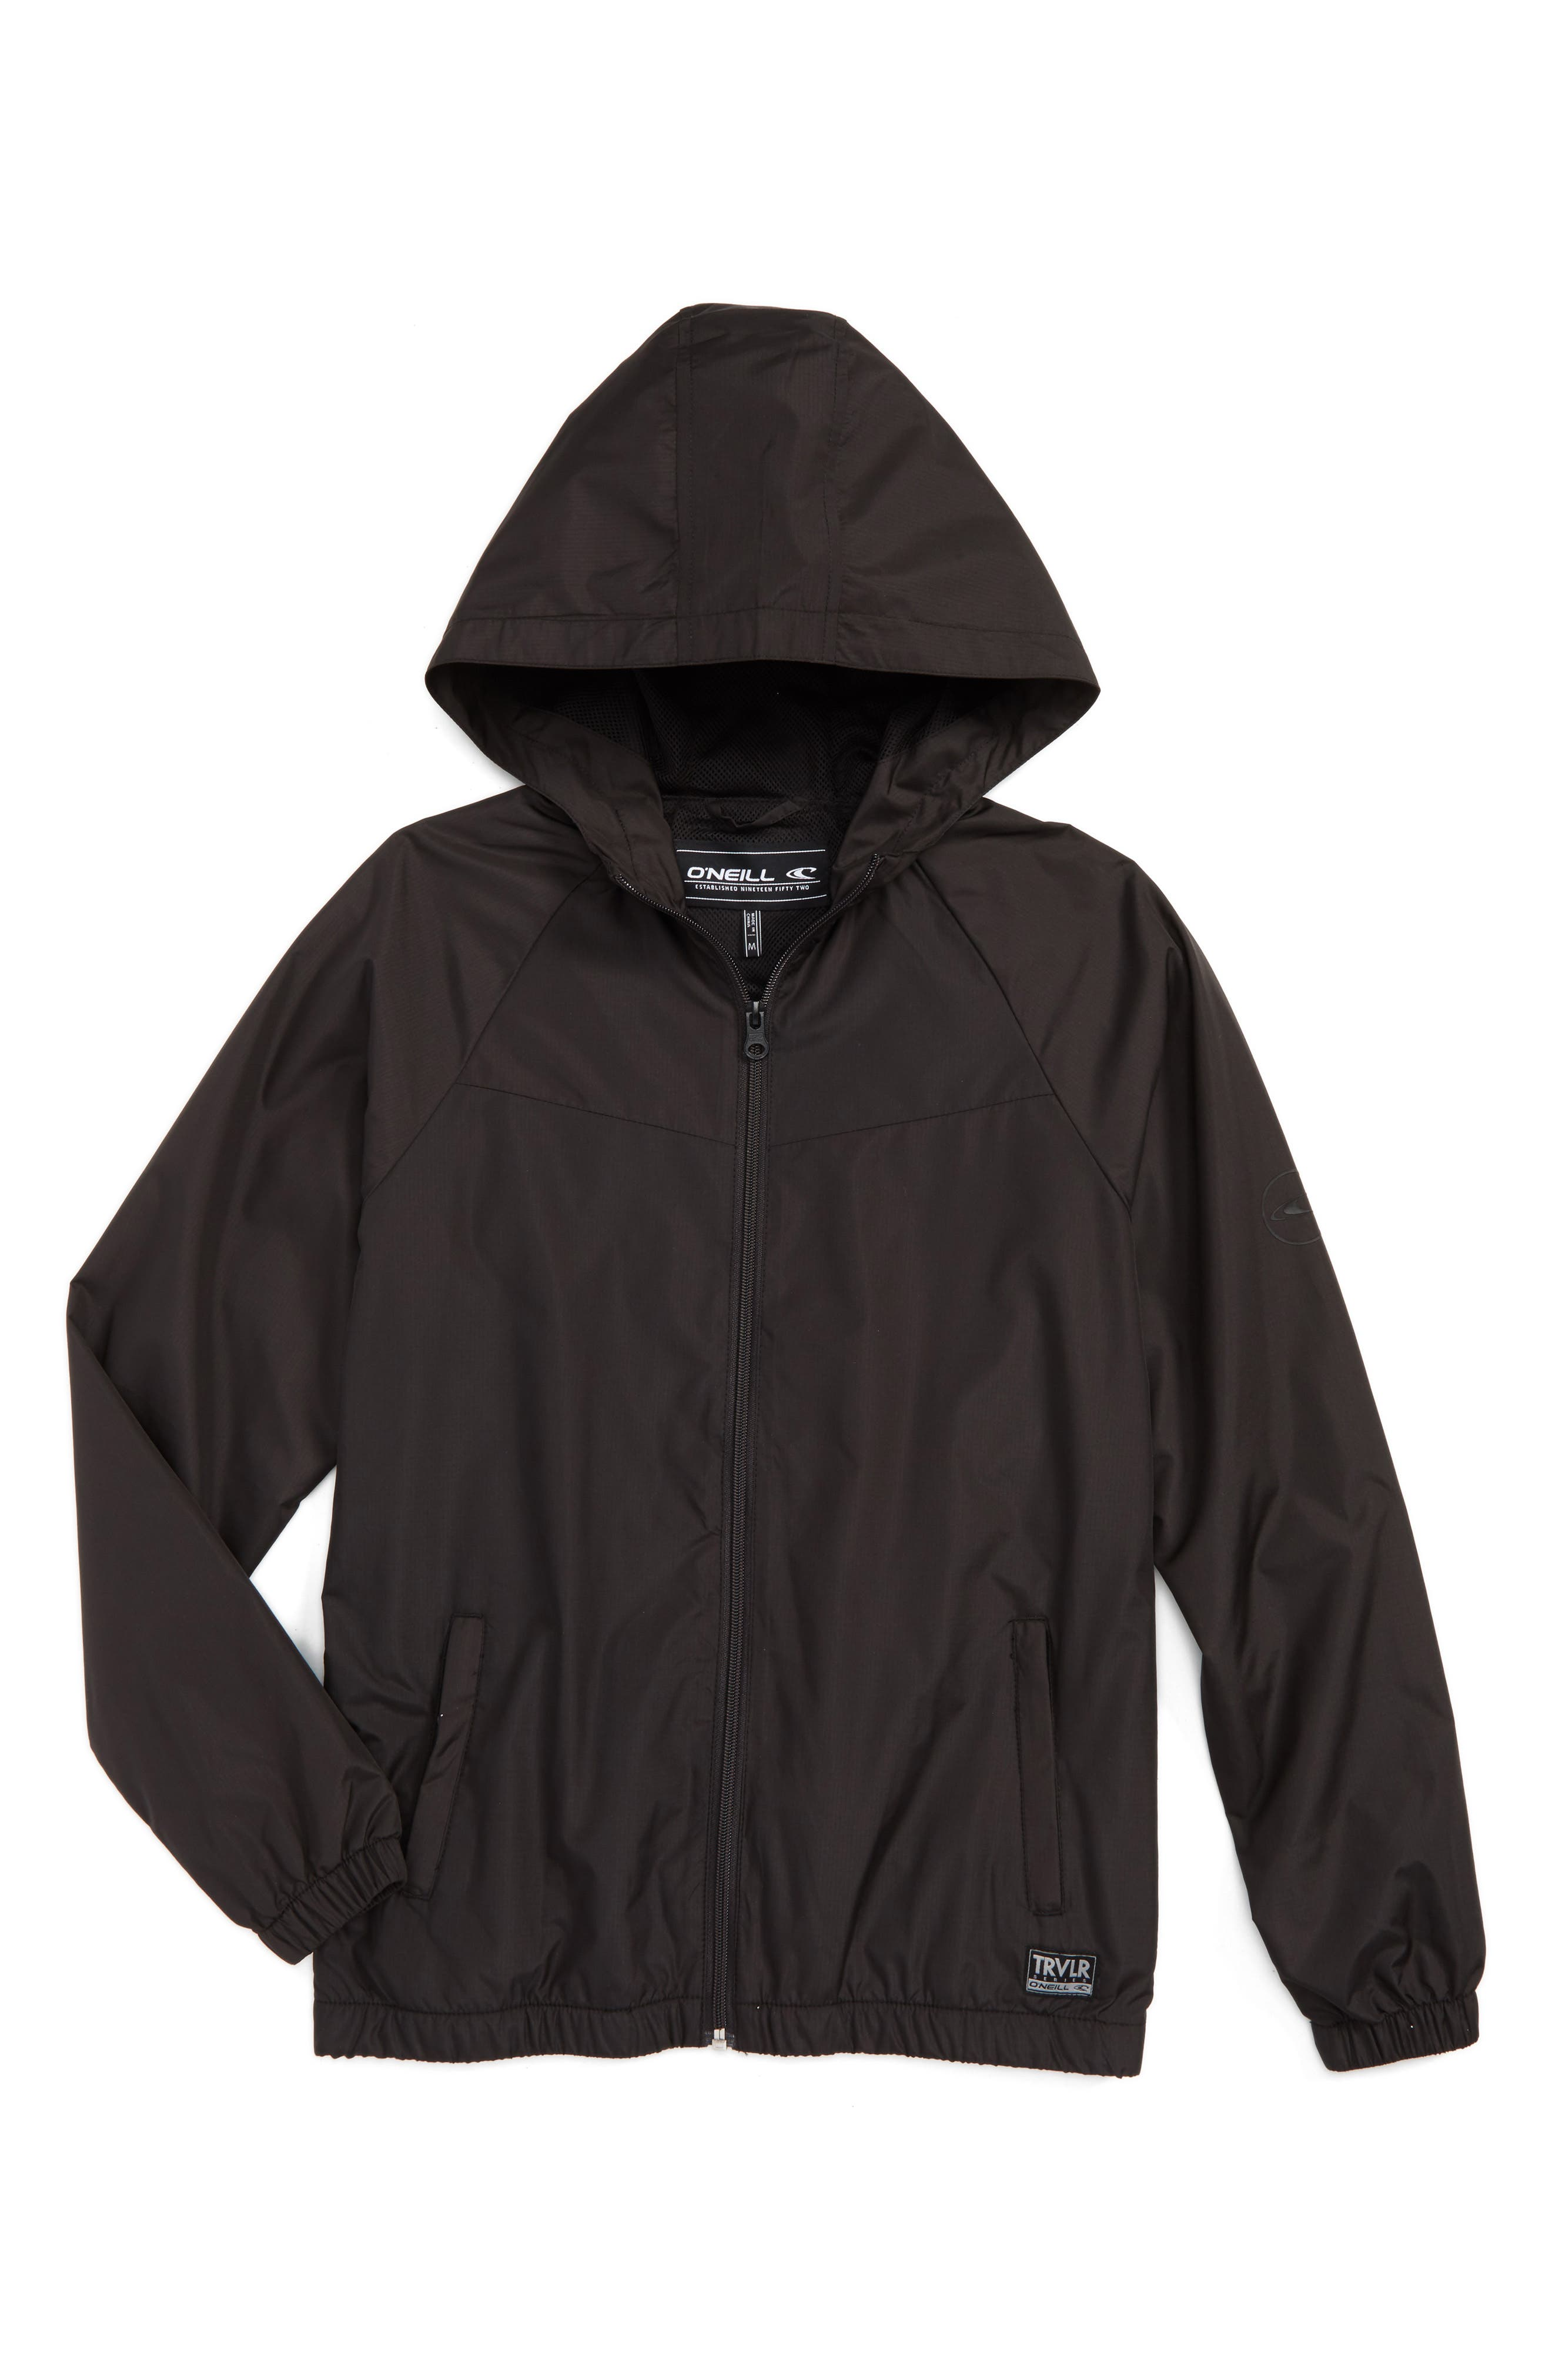 Alternate Image 1 Selected - O'Neill Traveler Packable Windbreaker Jacket (Toddler Boys, Little Boys & Big Boys)